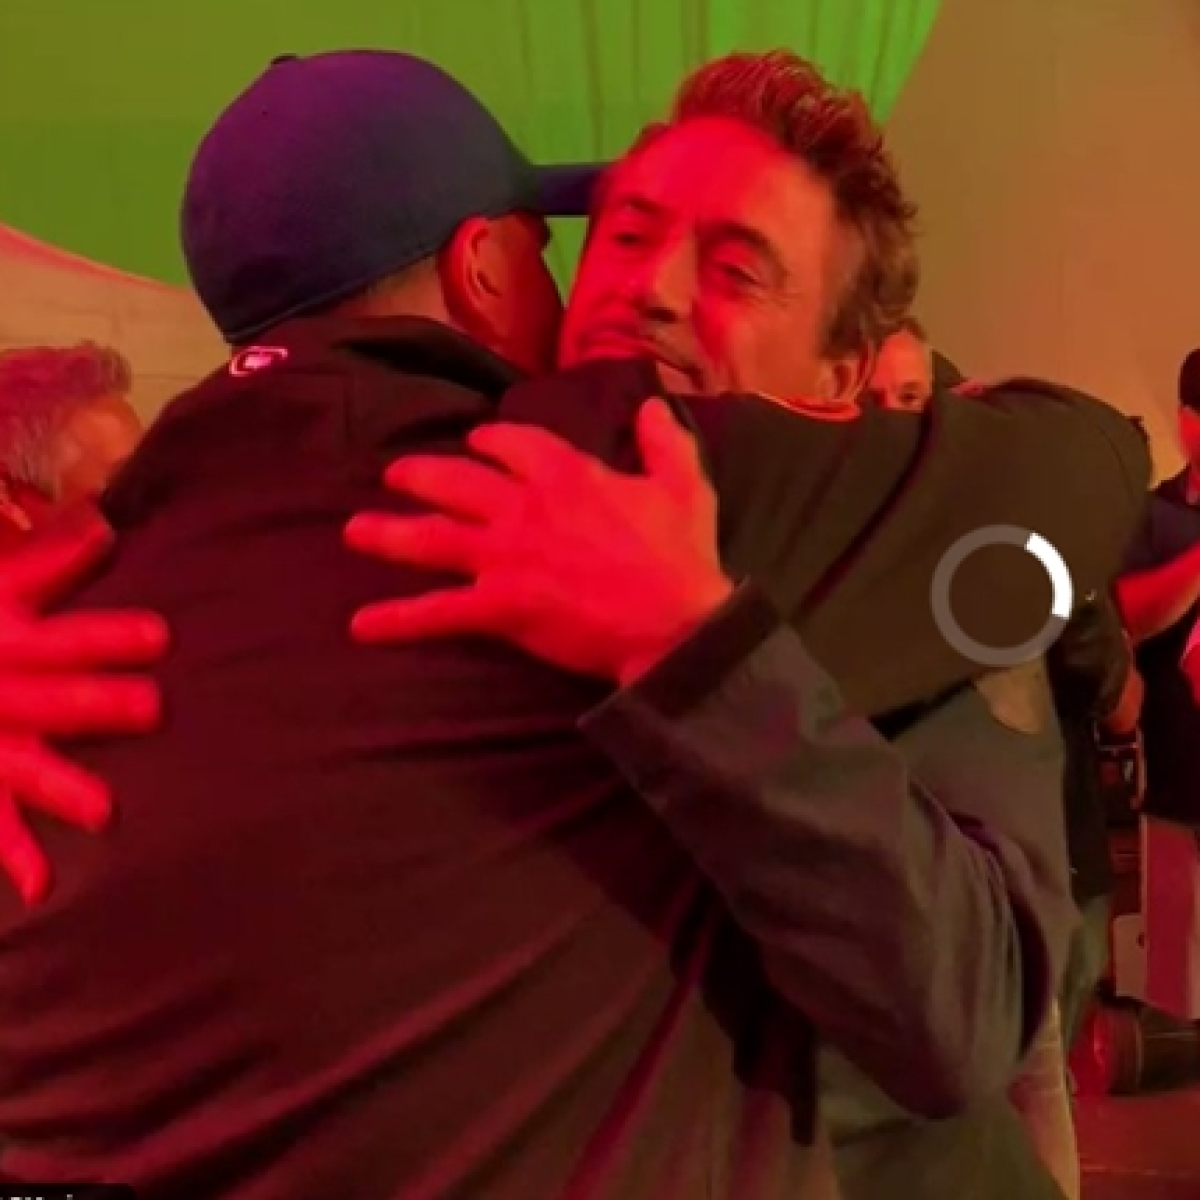 Avengers Assemble: Russo Brothers share unseen last day footage of Chris Evans as 'Captain America', Robert Downey Jr as 'Iron Man'